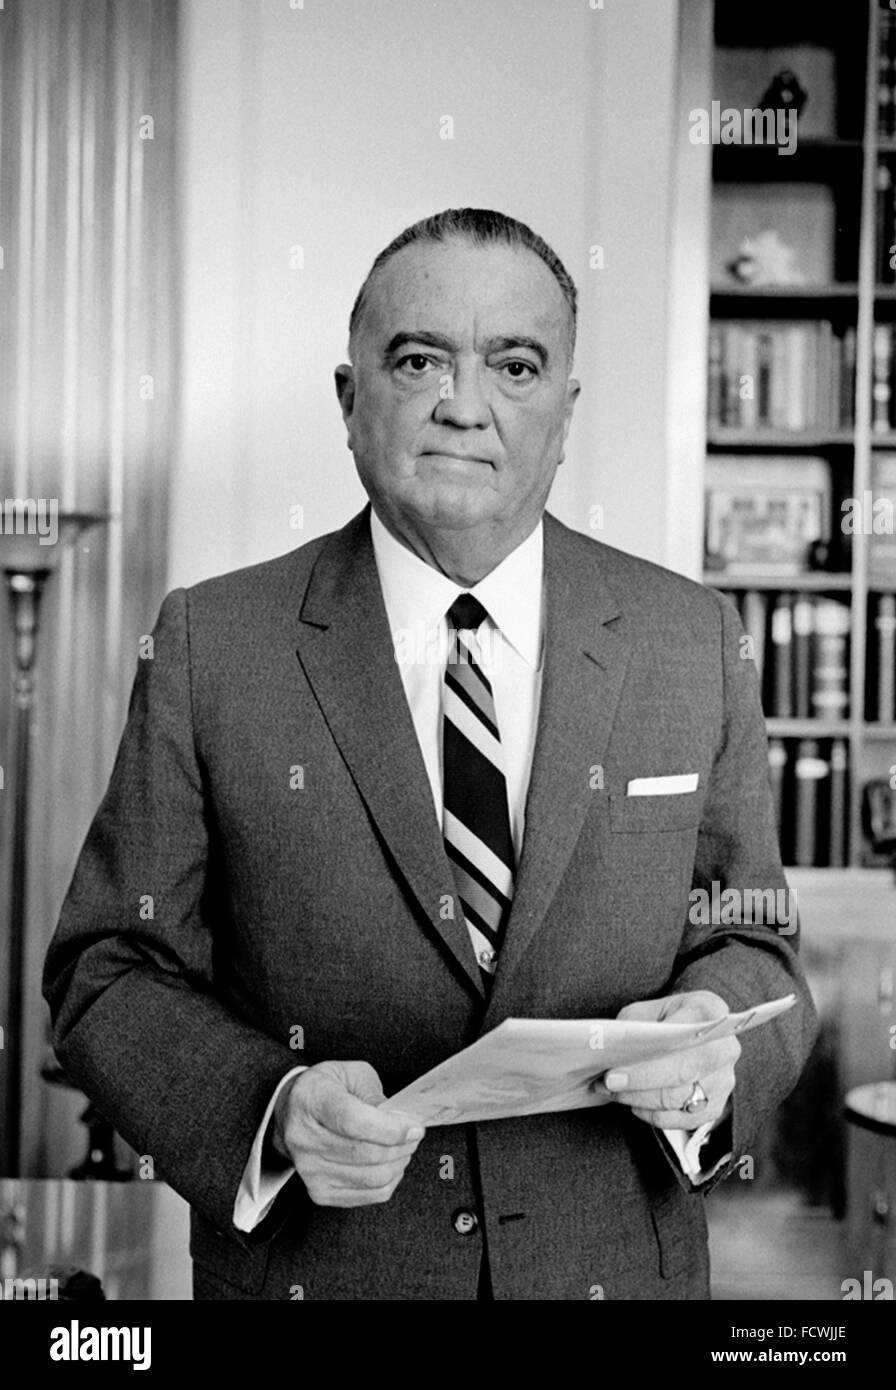 J Edgar Hoover. Portrait of the first Director of the Federal Bureau of Investigation (FBI) in the USA, Sept 1961 - Stock Image